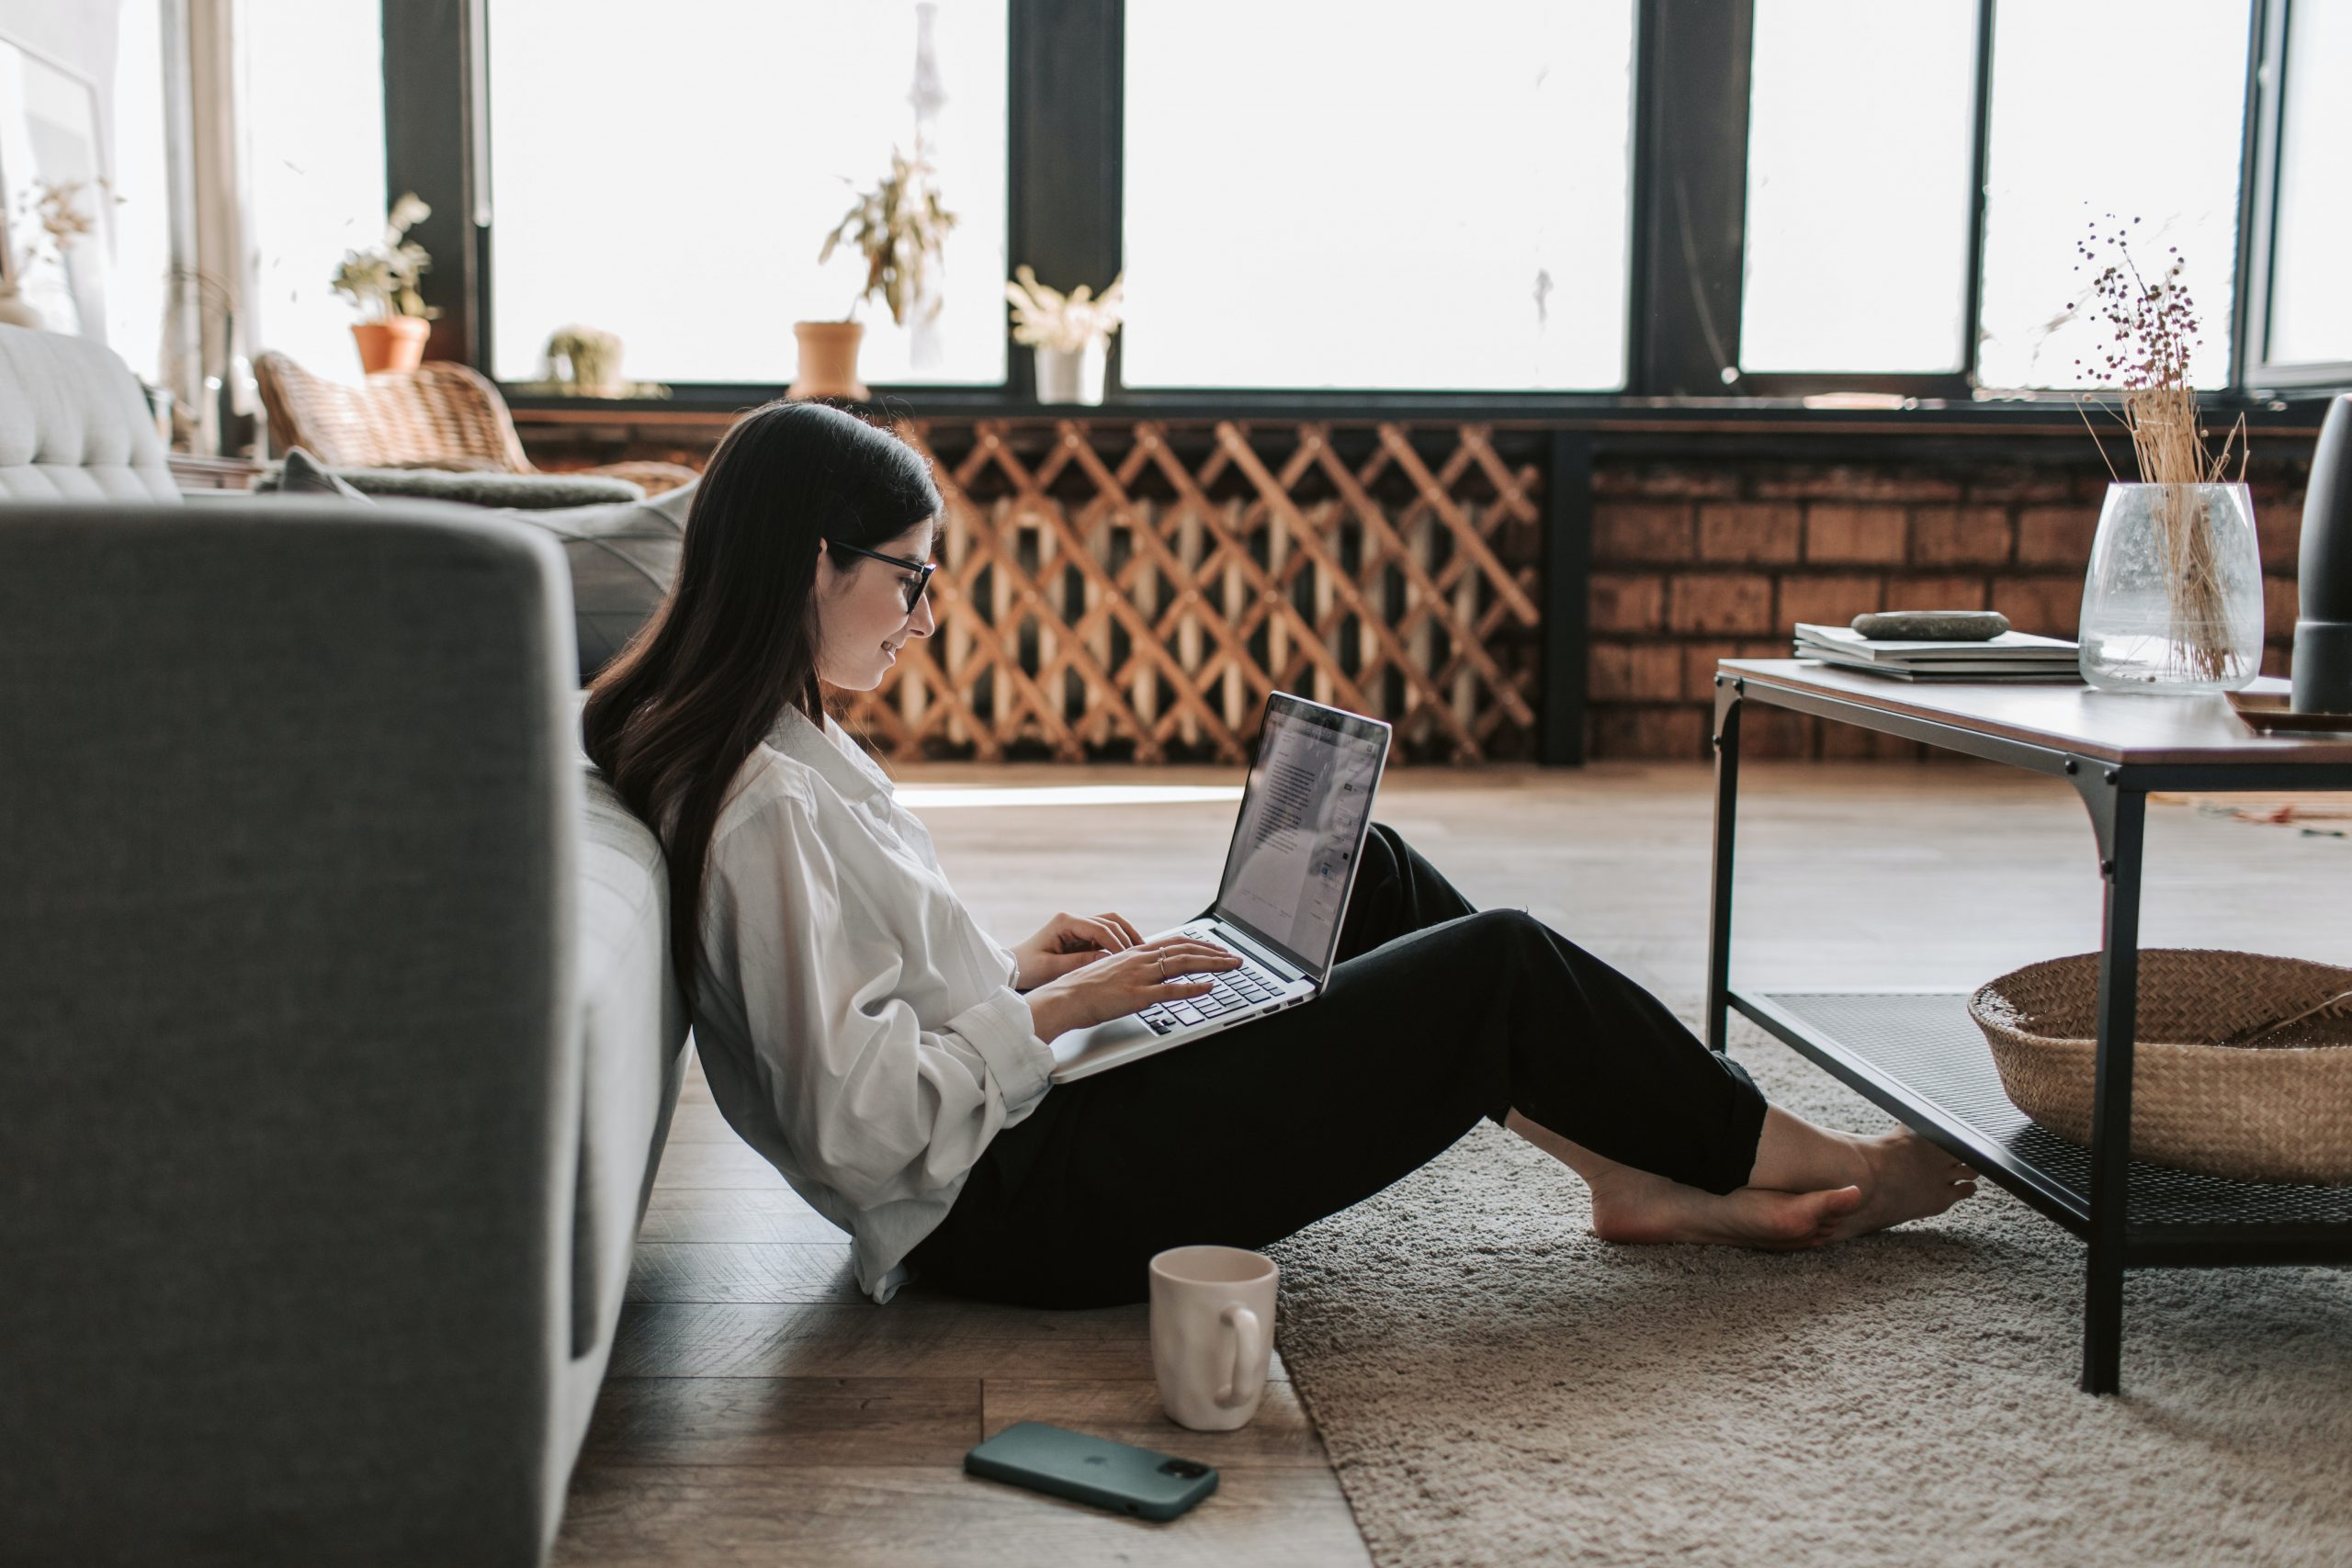 Lady sitting on floor with laptop